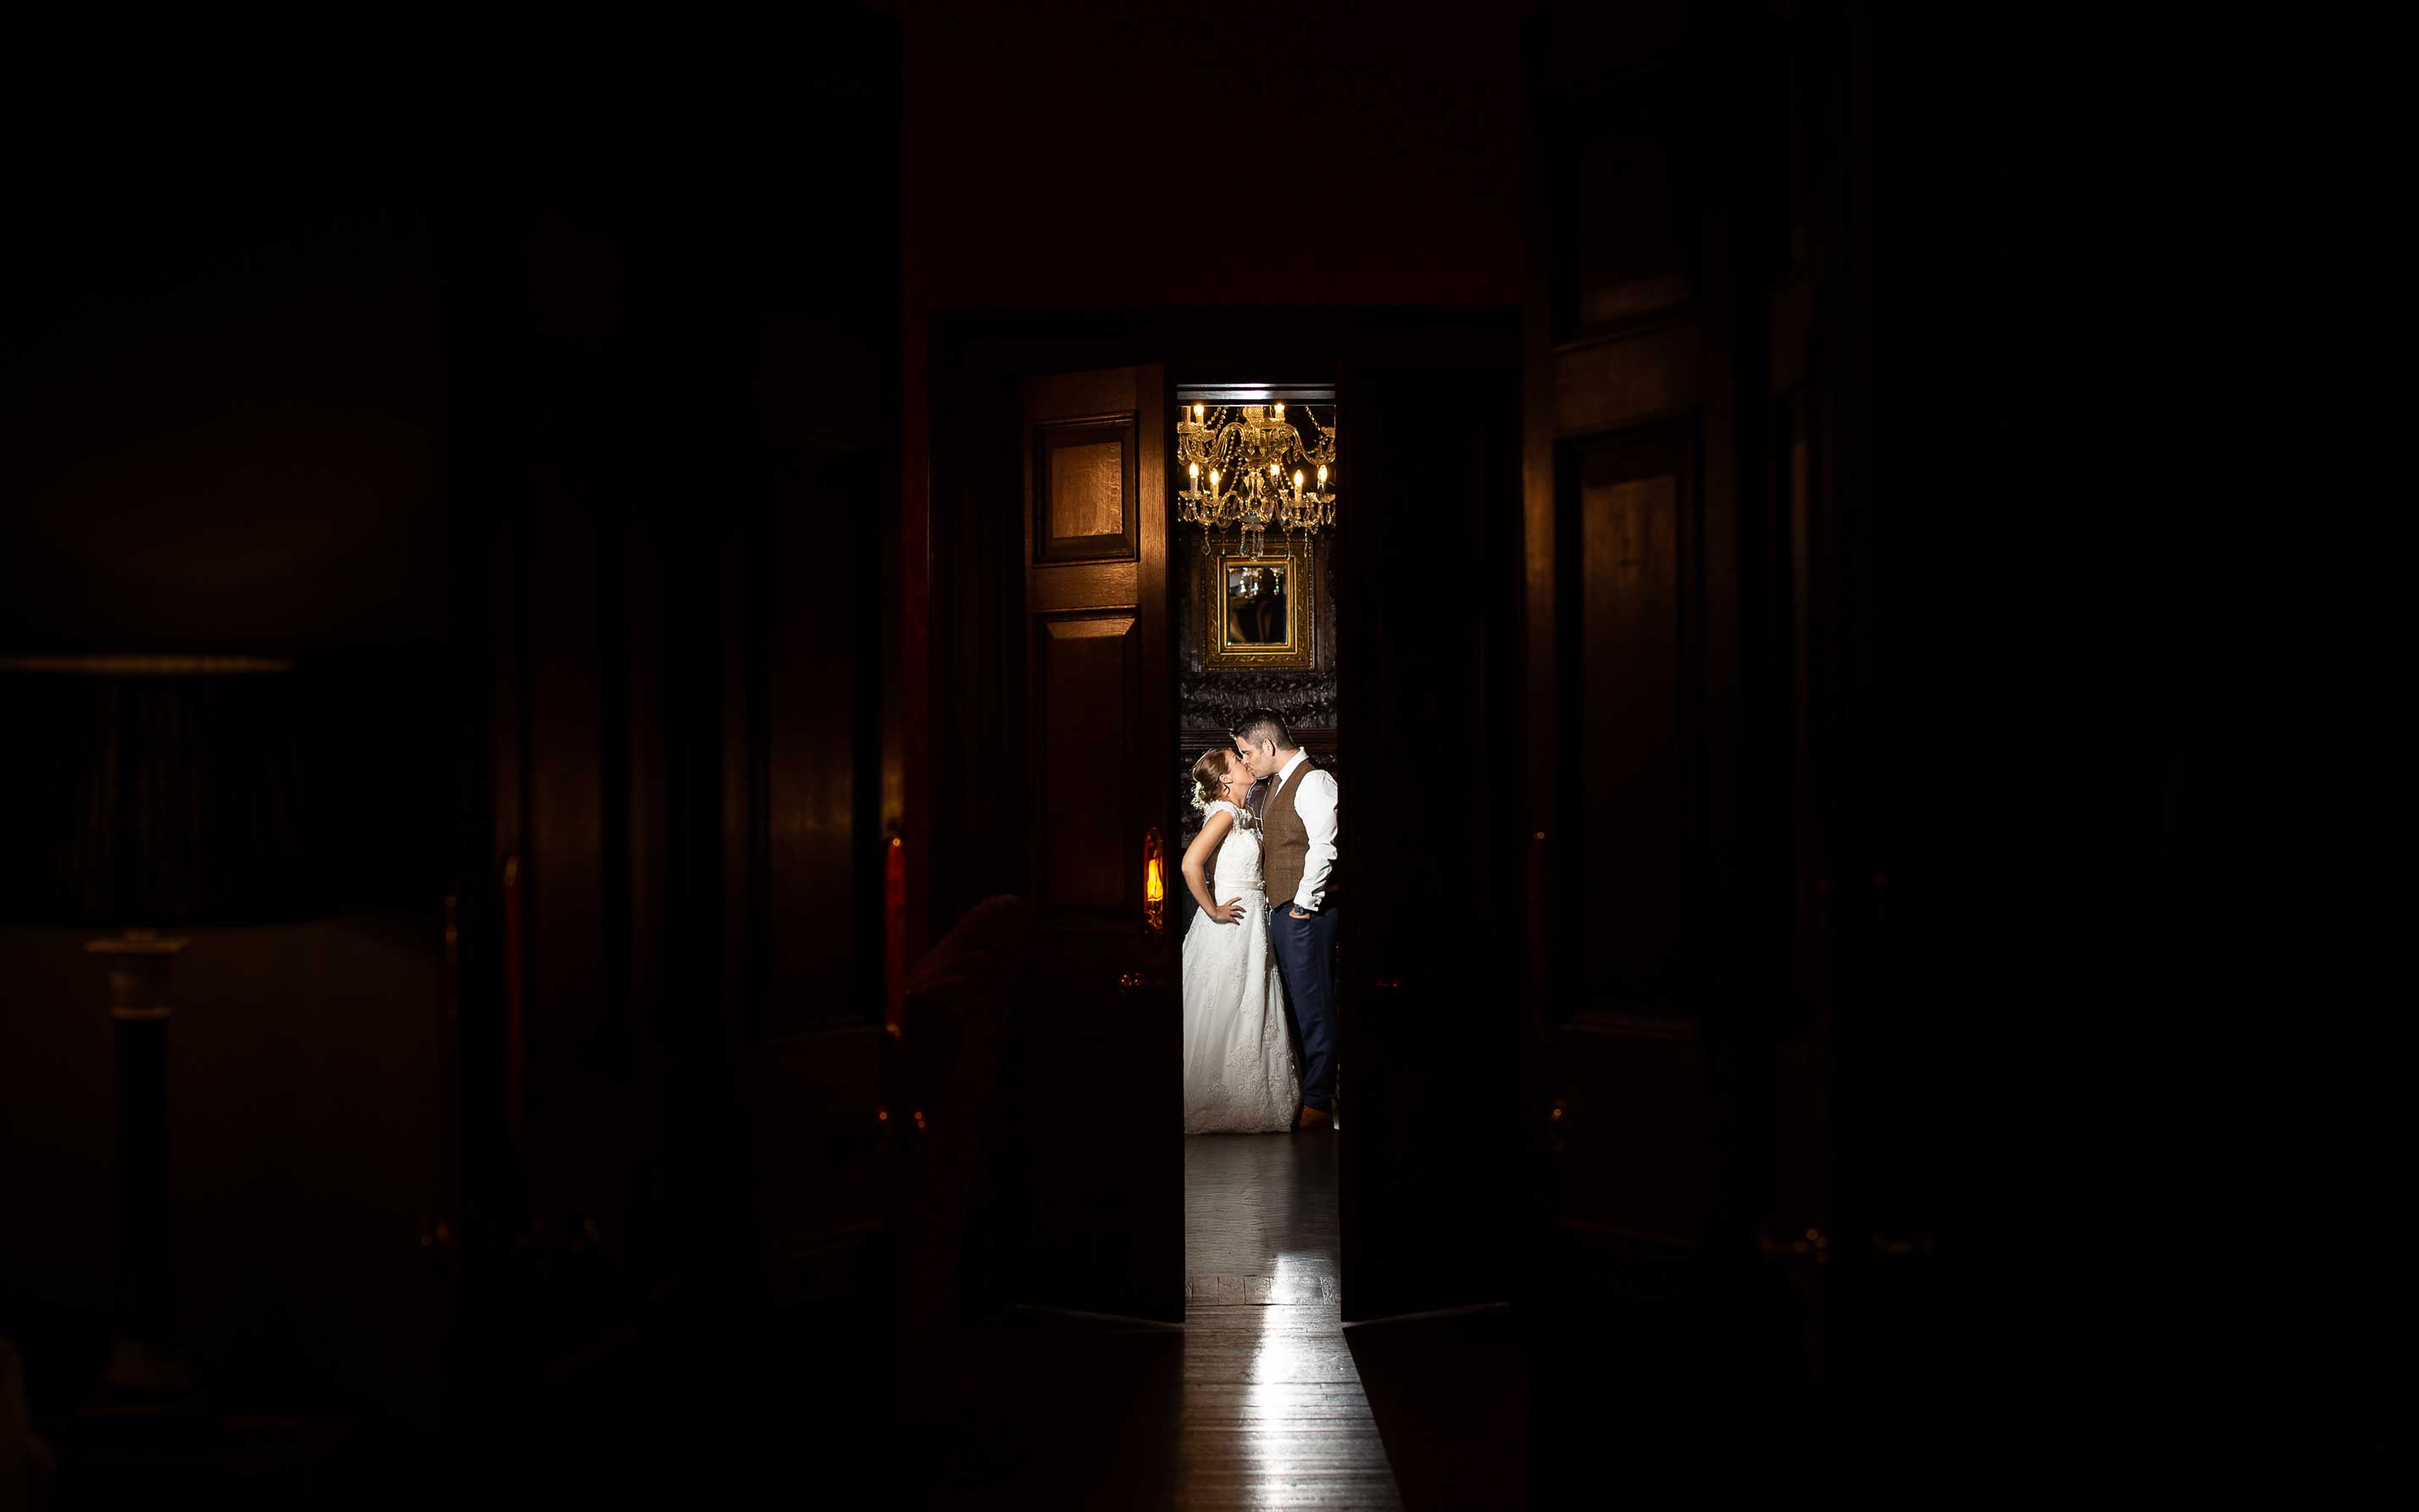 wedding photo of the bride and groom